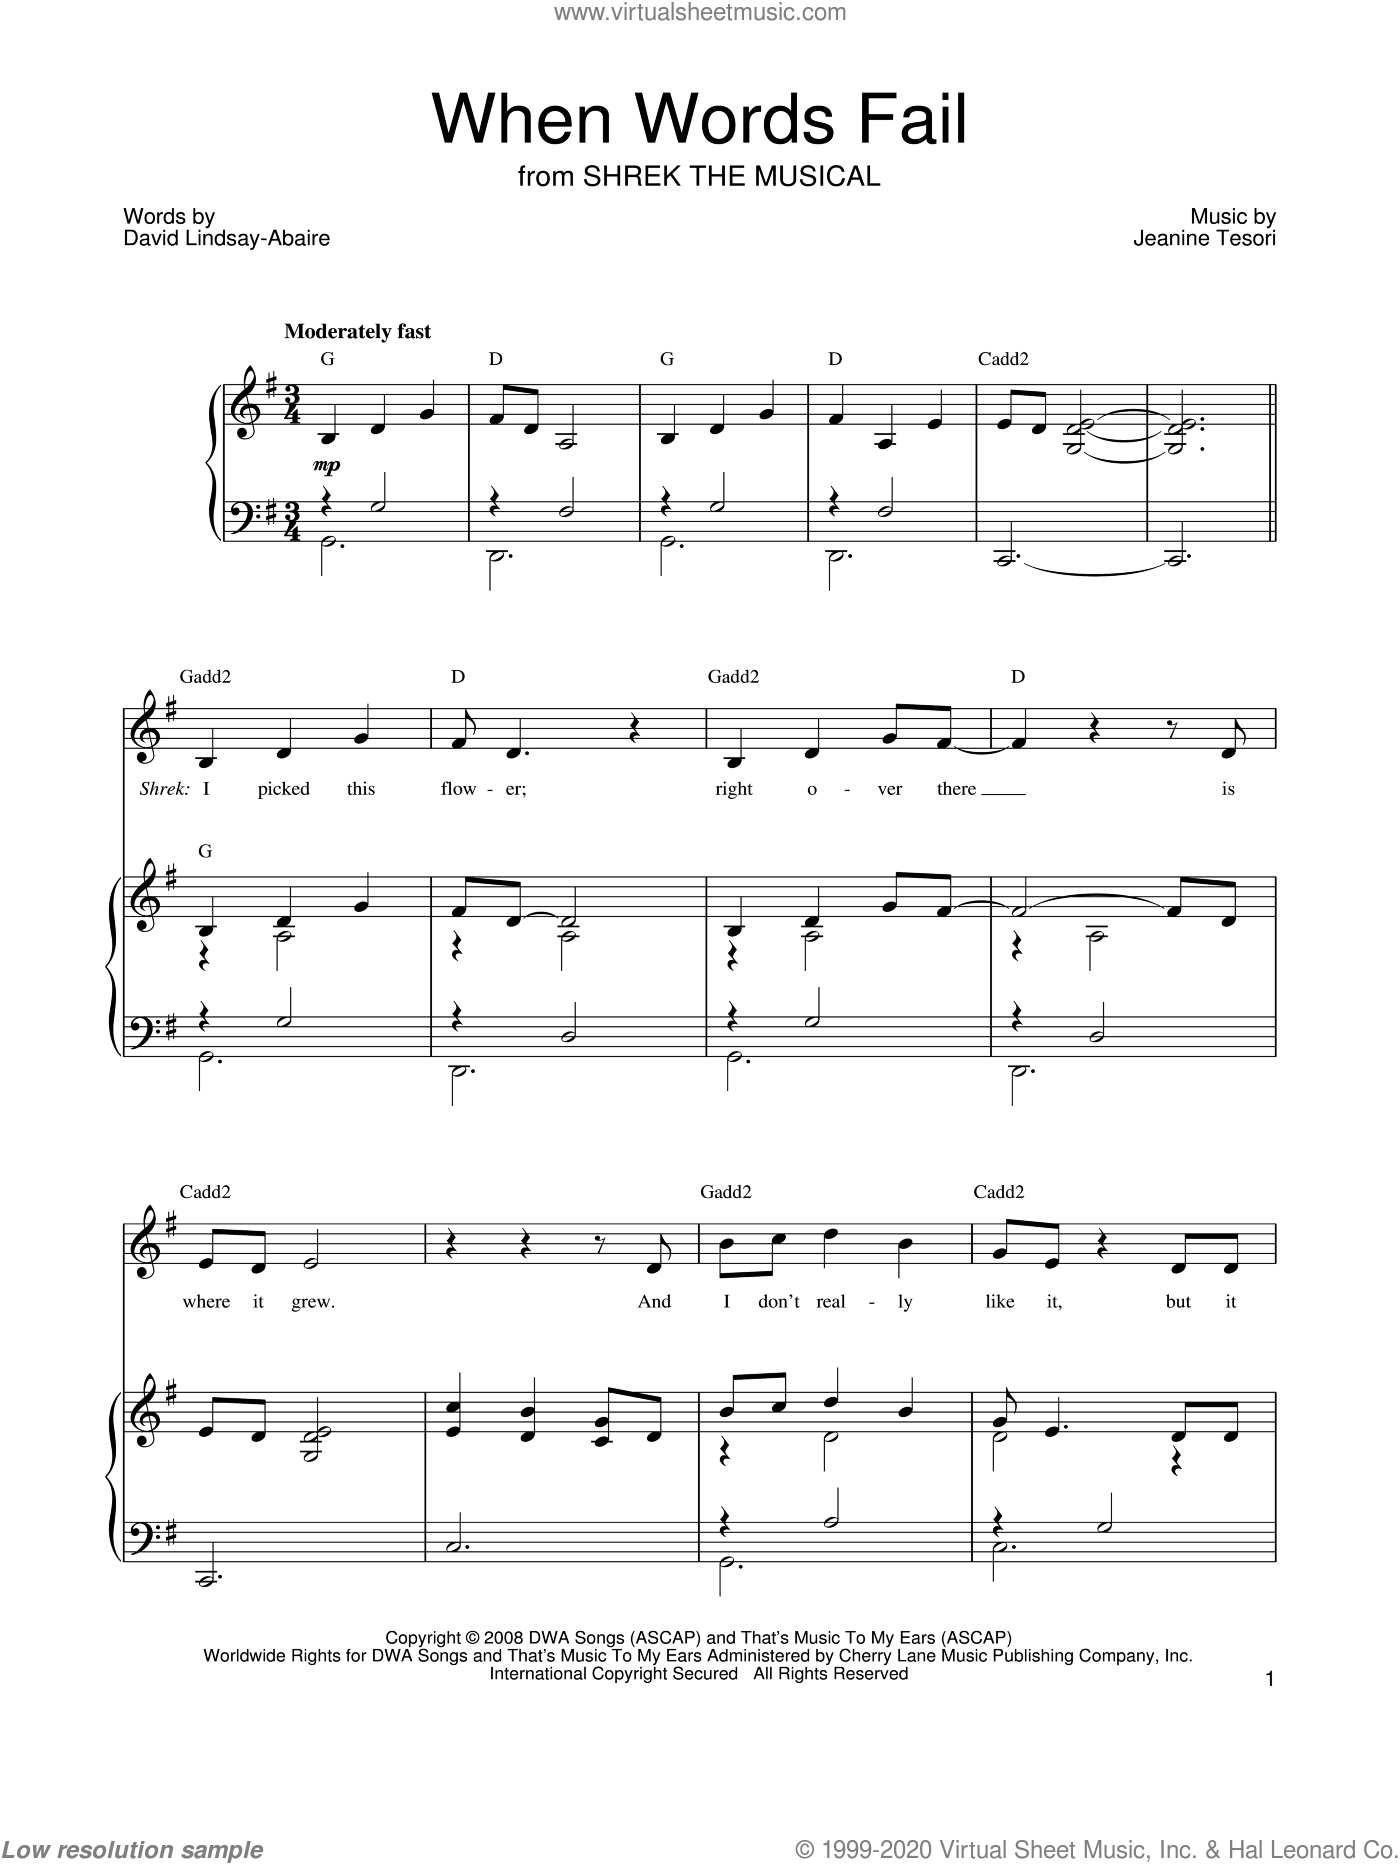 When Words Fail sheet music for voice, piano or guitar by Shrek The Musical, David Lindsay-Abaire and Jeanine Tesori, intermediate skill level